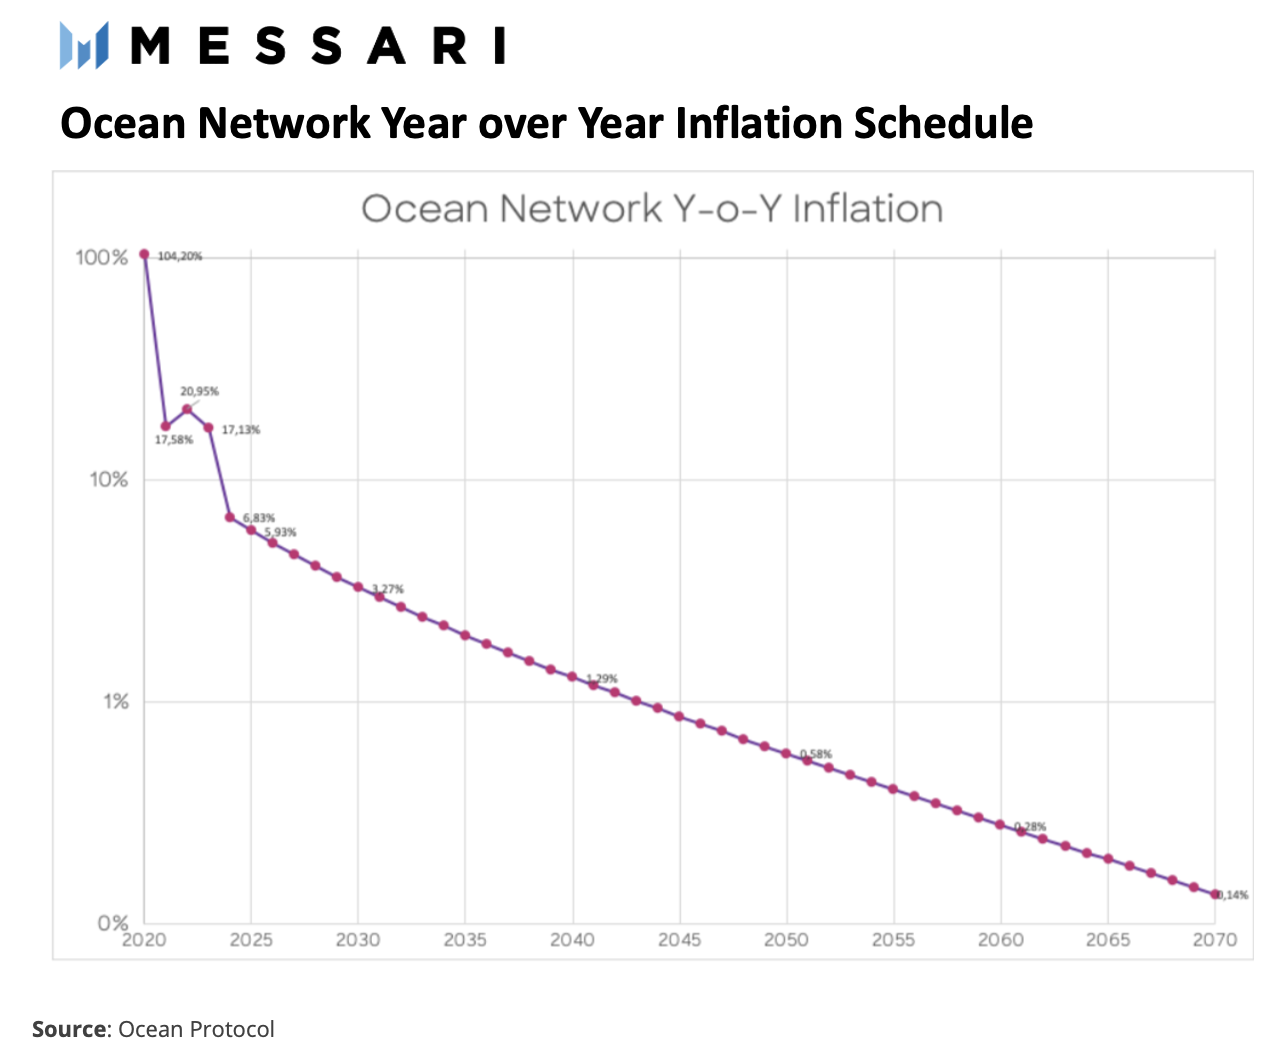 https://messari.s3.amazonaws.com/images/agora-images/05936871-Ocean%20year%20over%20year%20inflation%20schedule.png